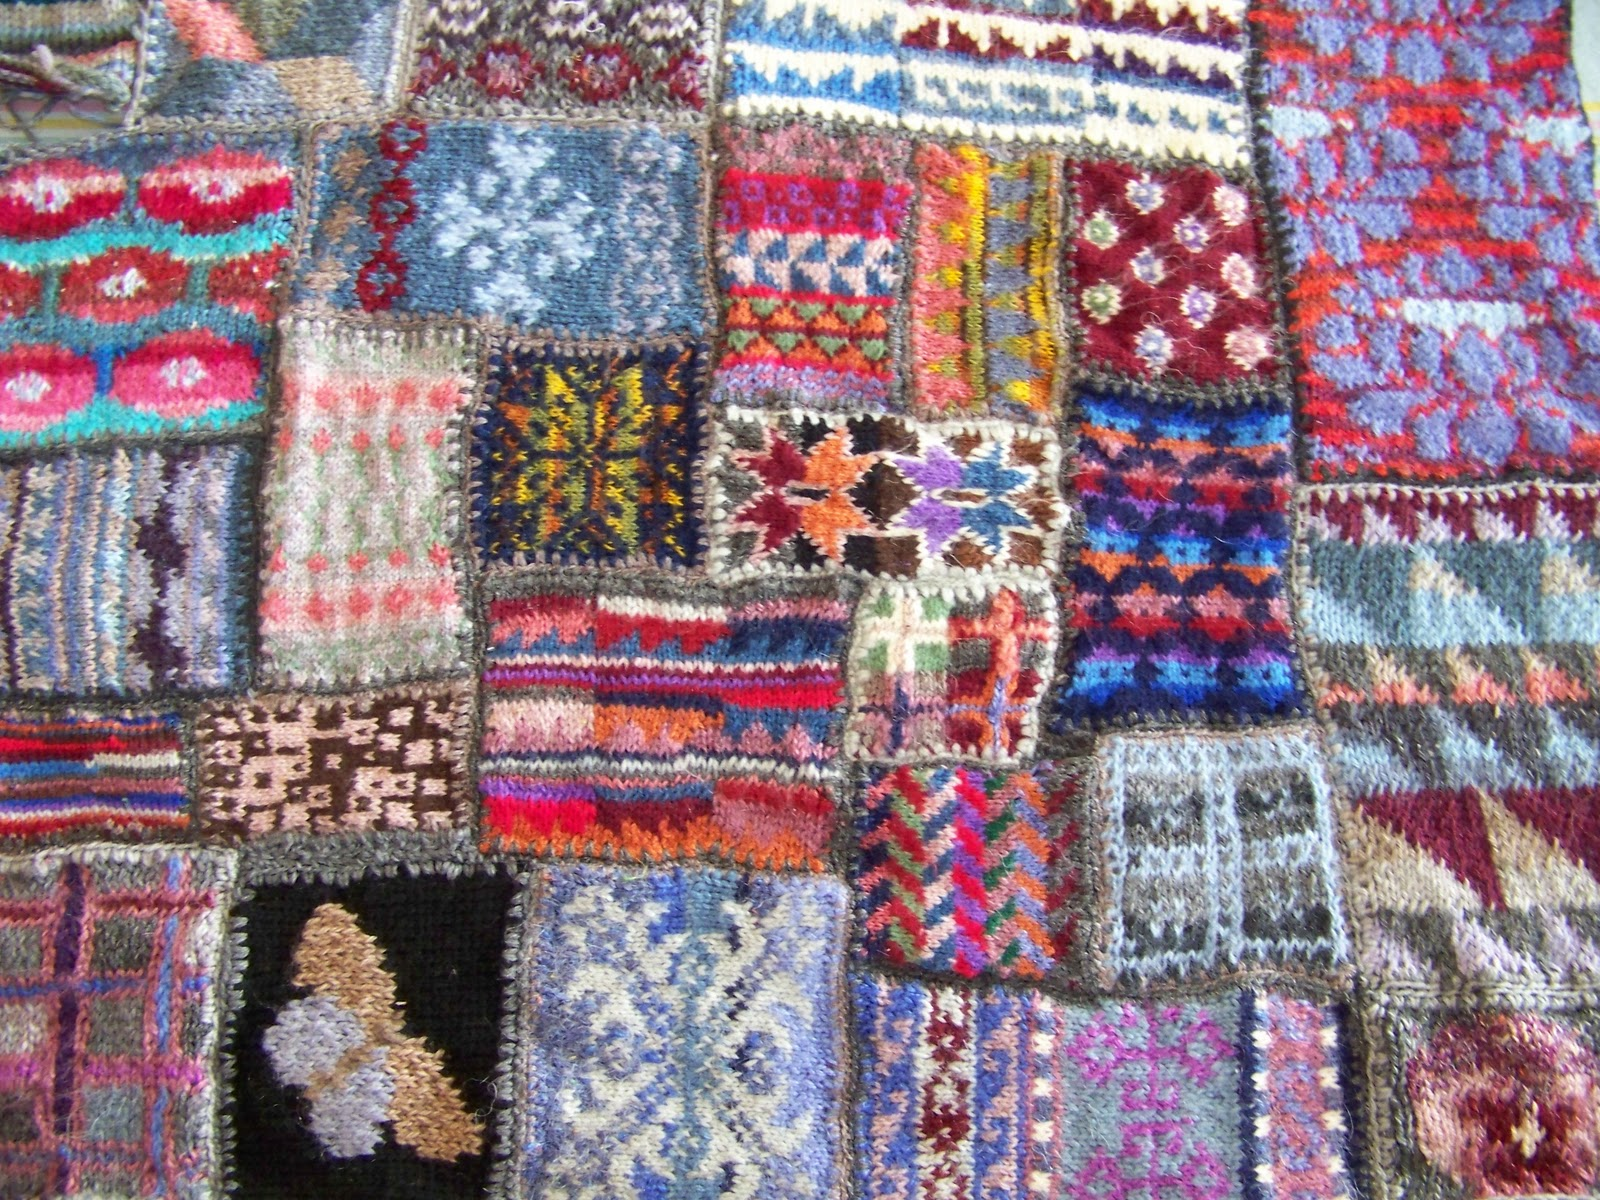 Cape Pincushion: Knitted patchwork